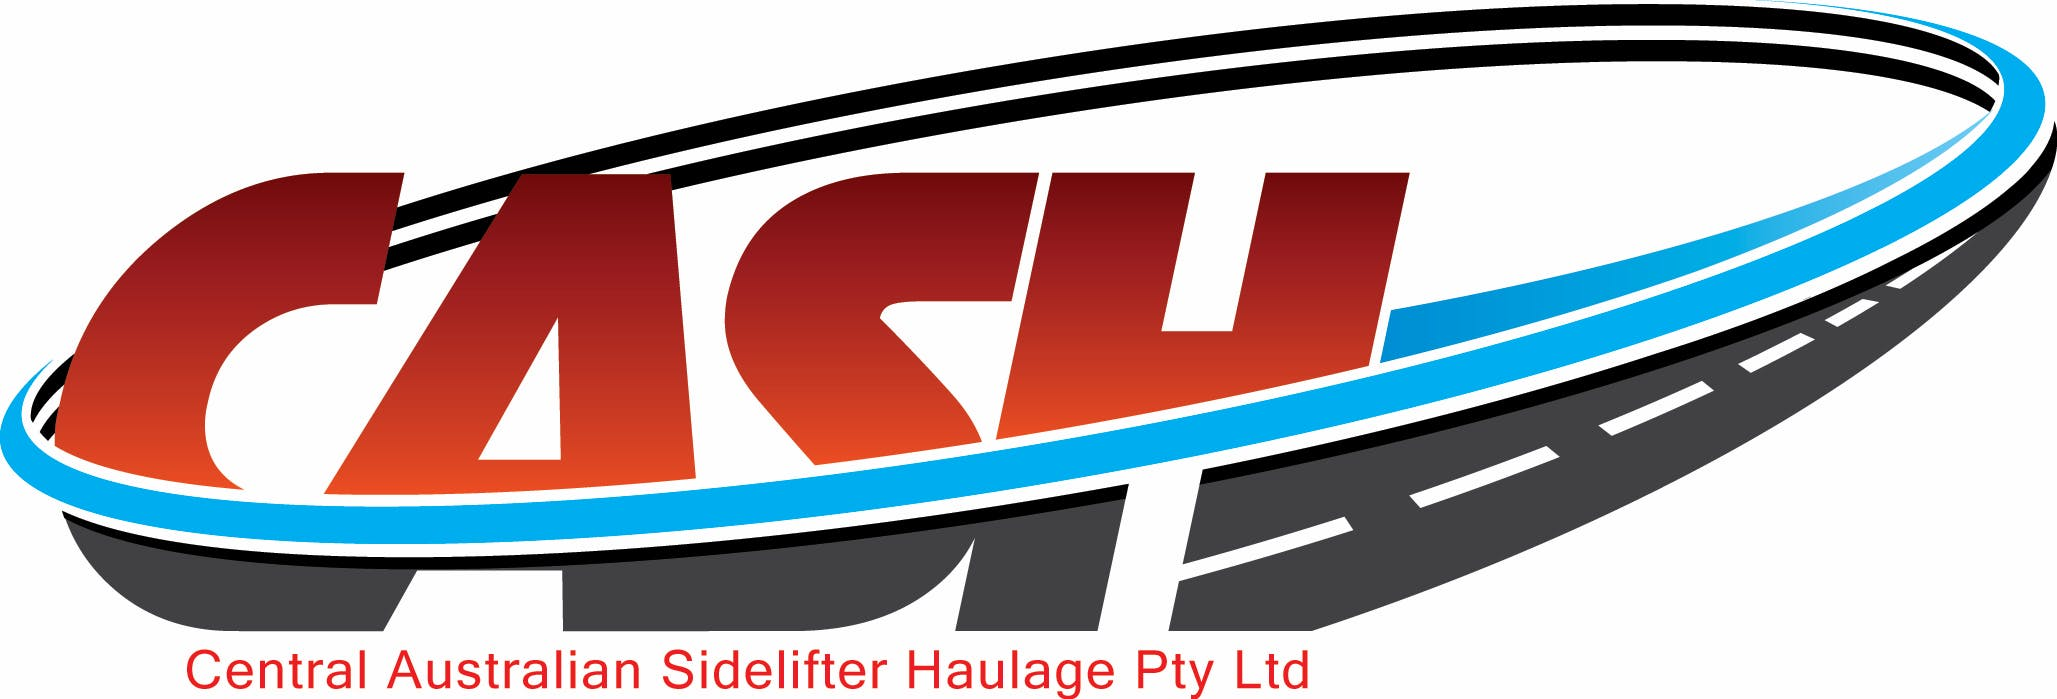 Central Australian Sidelifter Haulage P/L